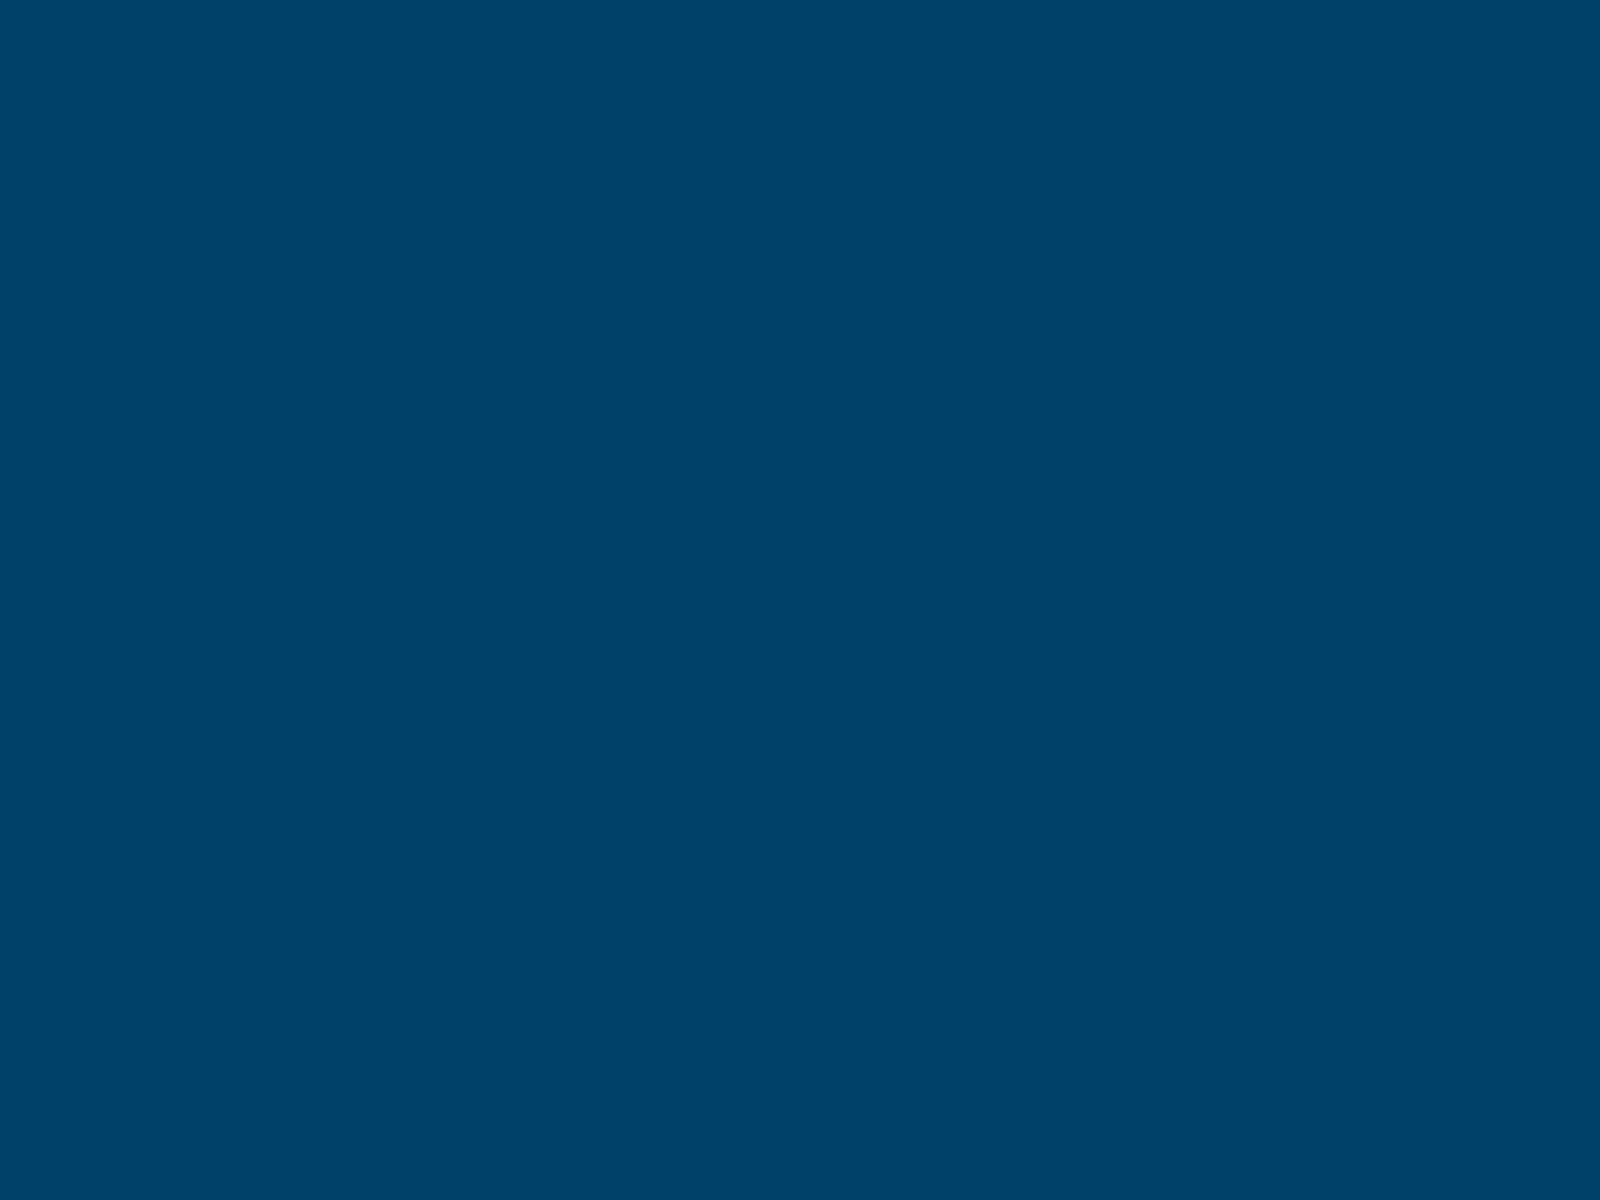 1600x1200 Dark Imperial Blue Solid Color Background